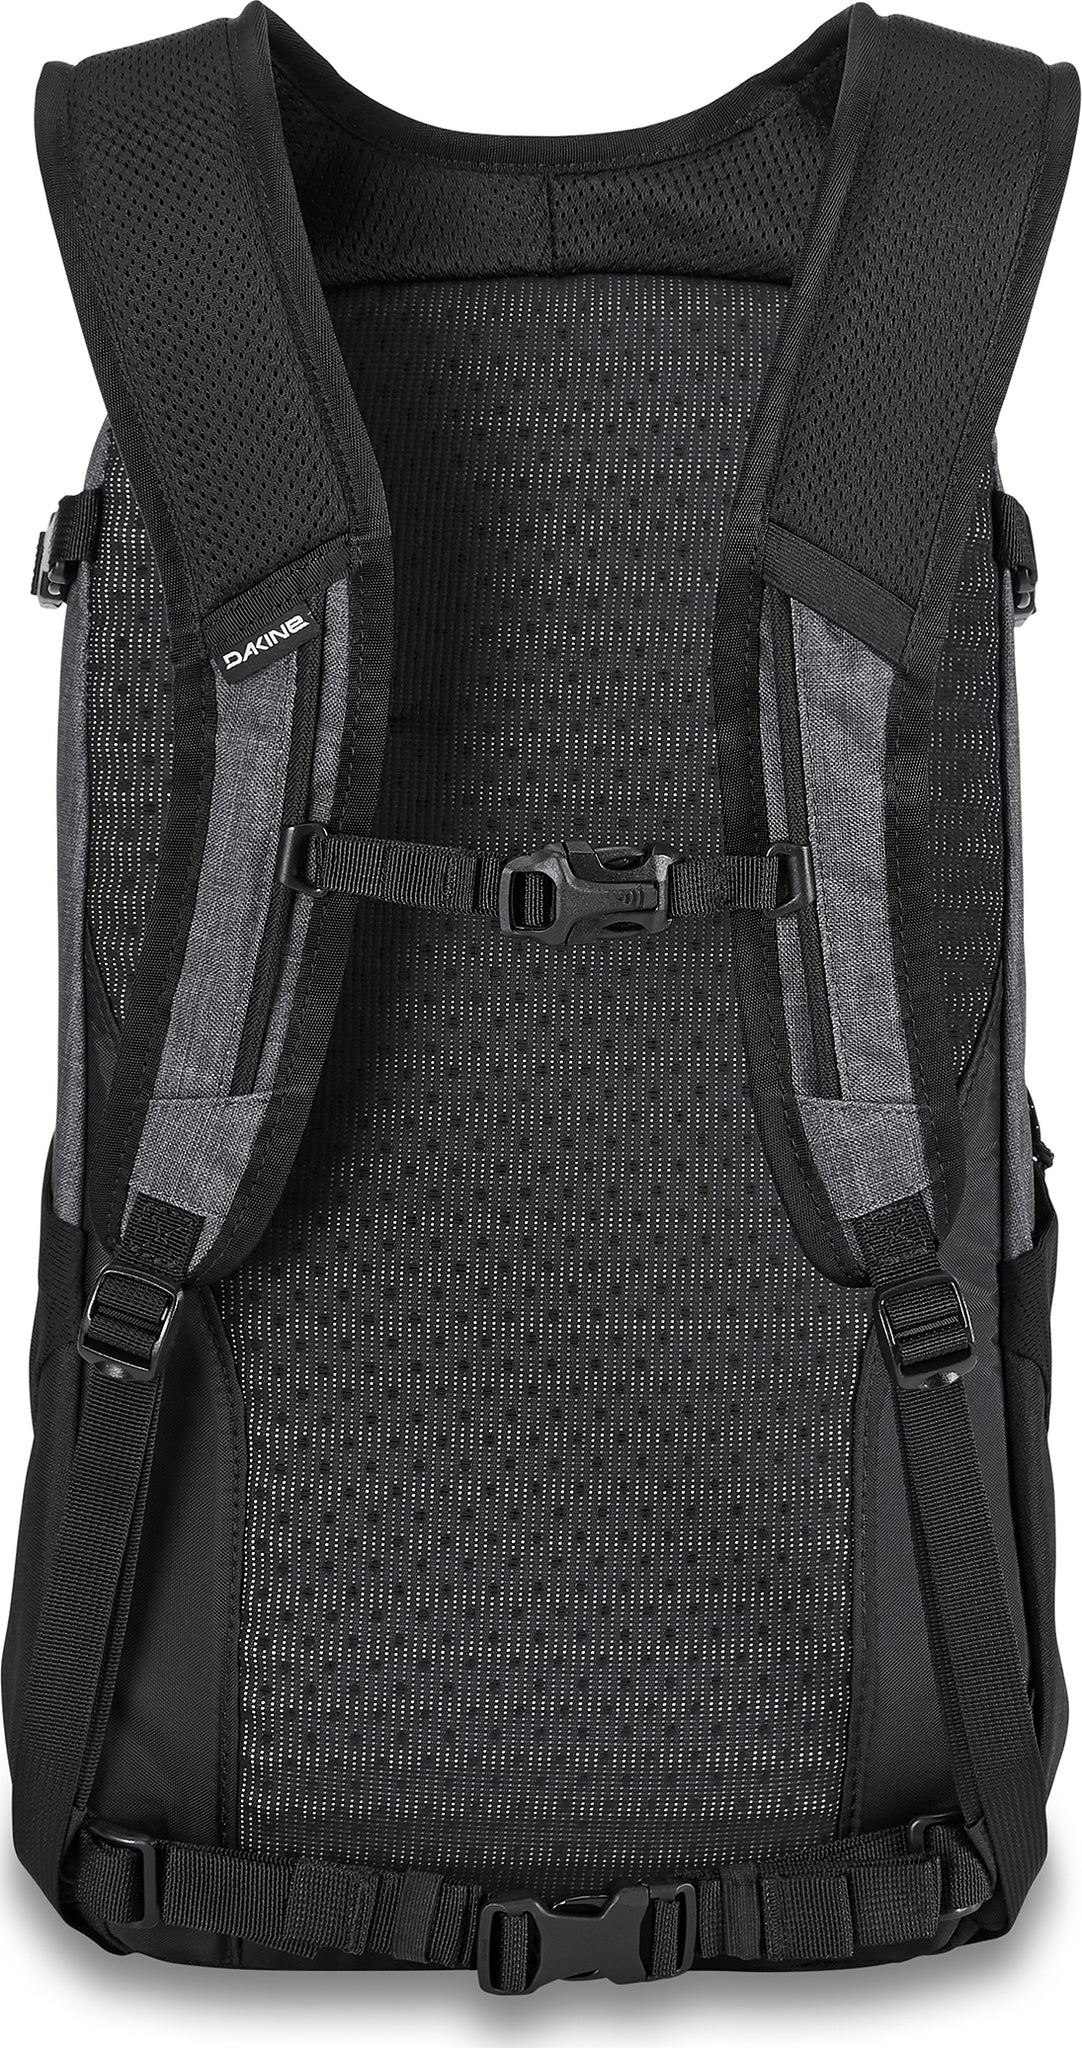 11b0aee3f2dce ... Seaford Pet · Canyon 20L Backpack thumb ...